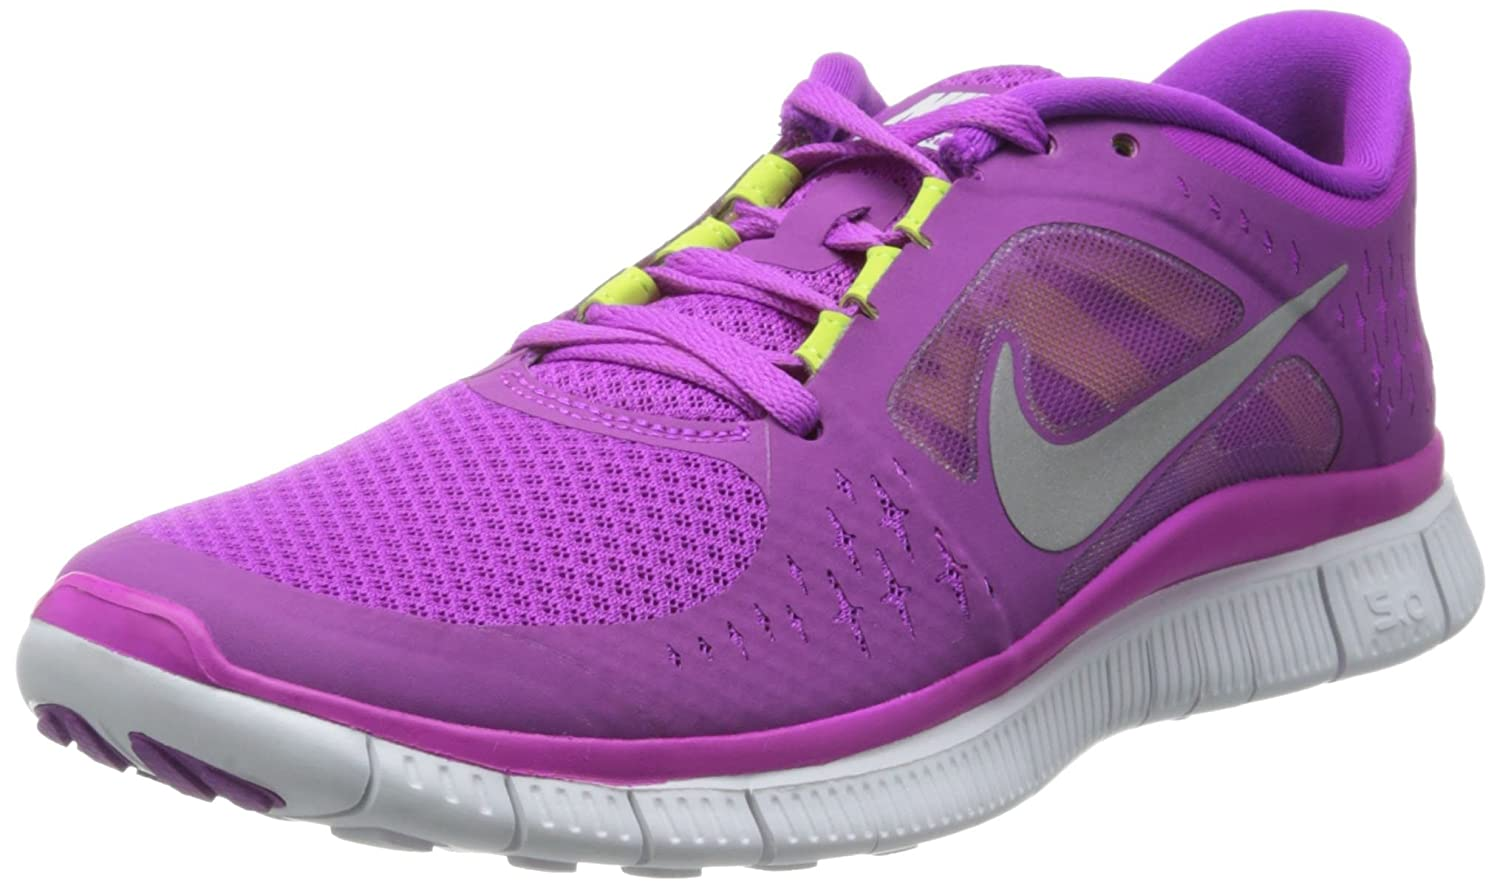 nike free run 5.0 womens training shoes with arch support